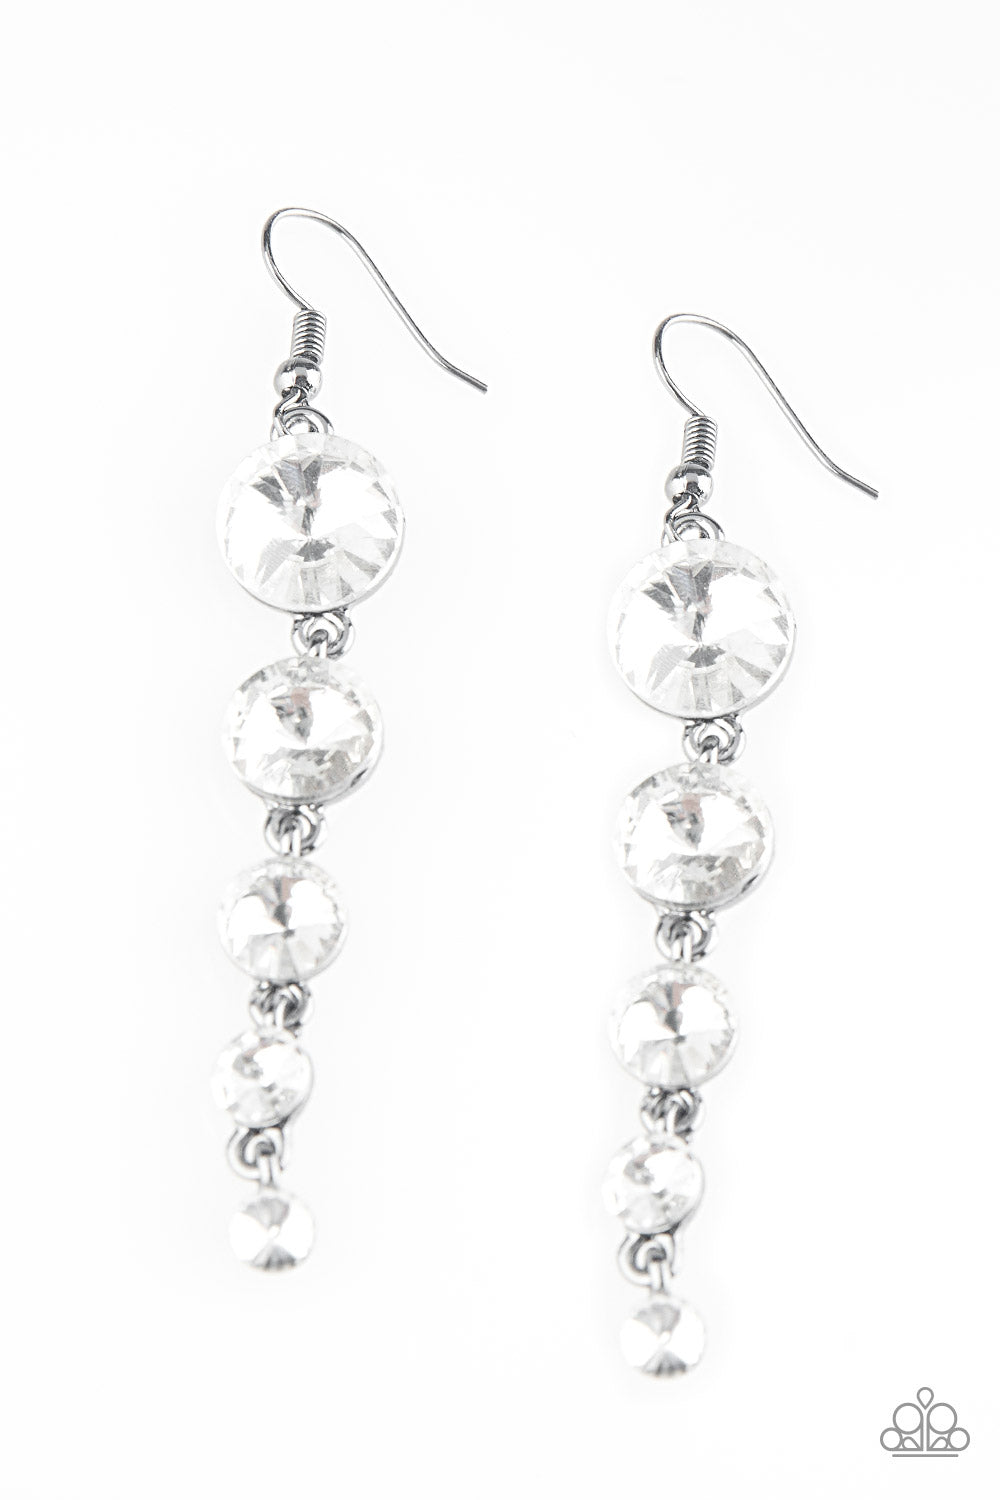 Paparazzi Accessories Raining Rhinestones - White Earring - Be Adored Jewelry